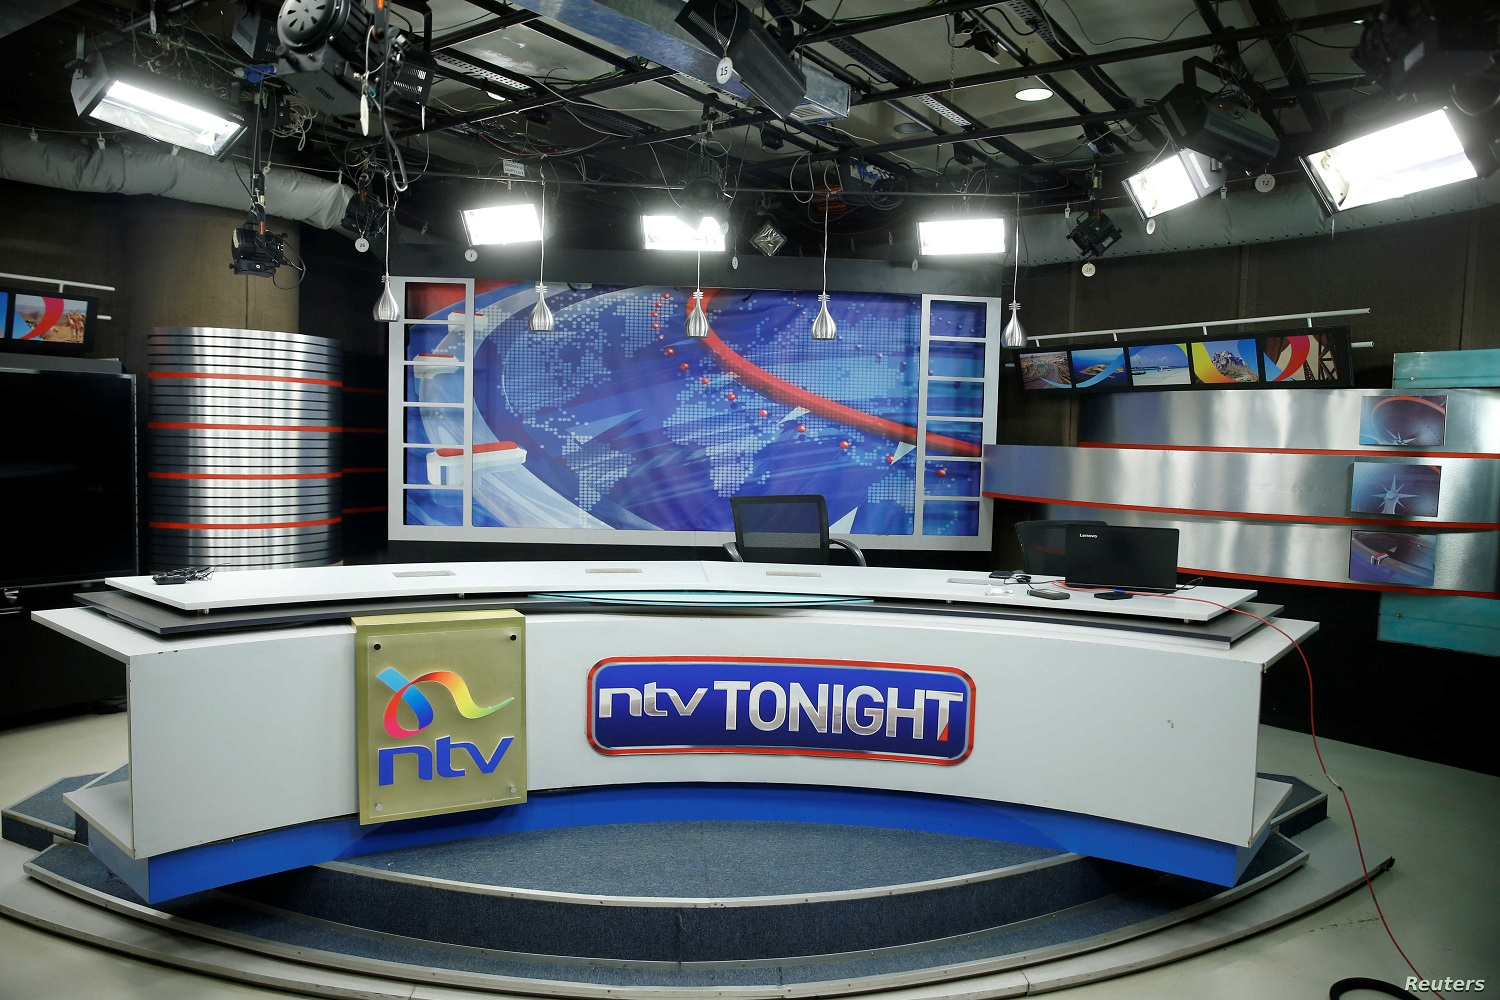 NTV Presenters 2020 www.businesstoday.co.ke